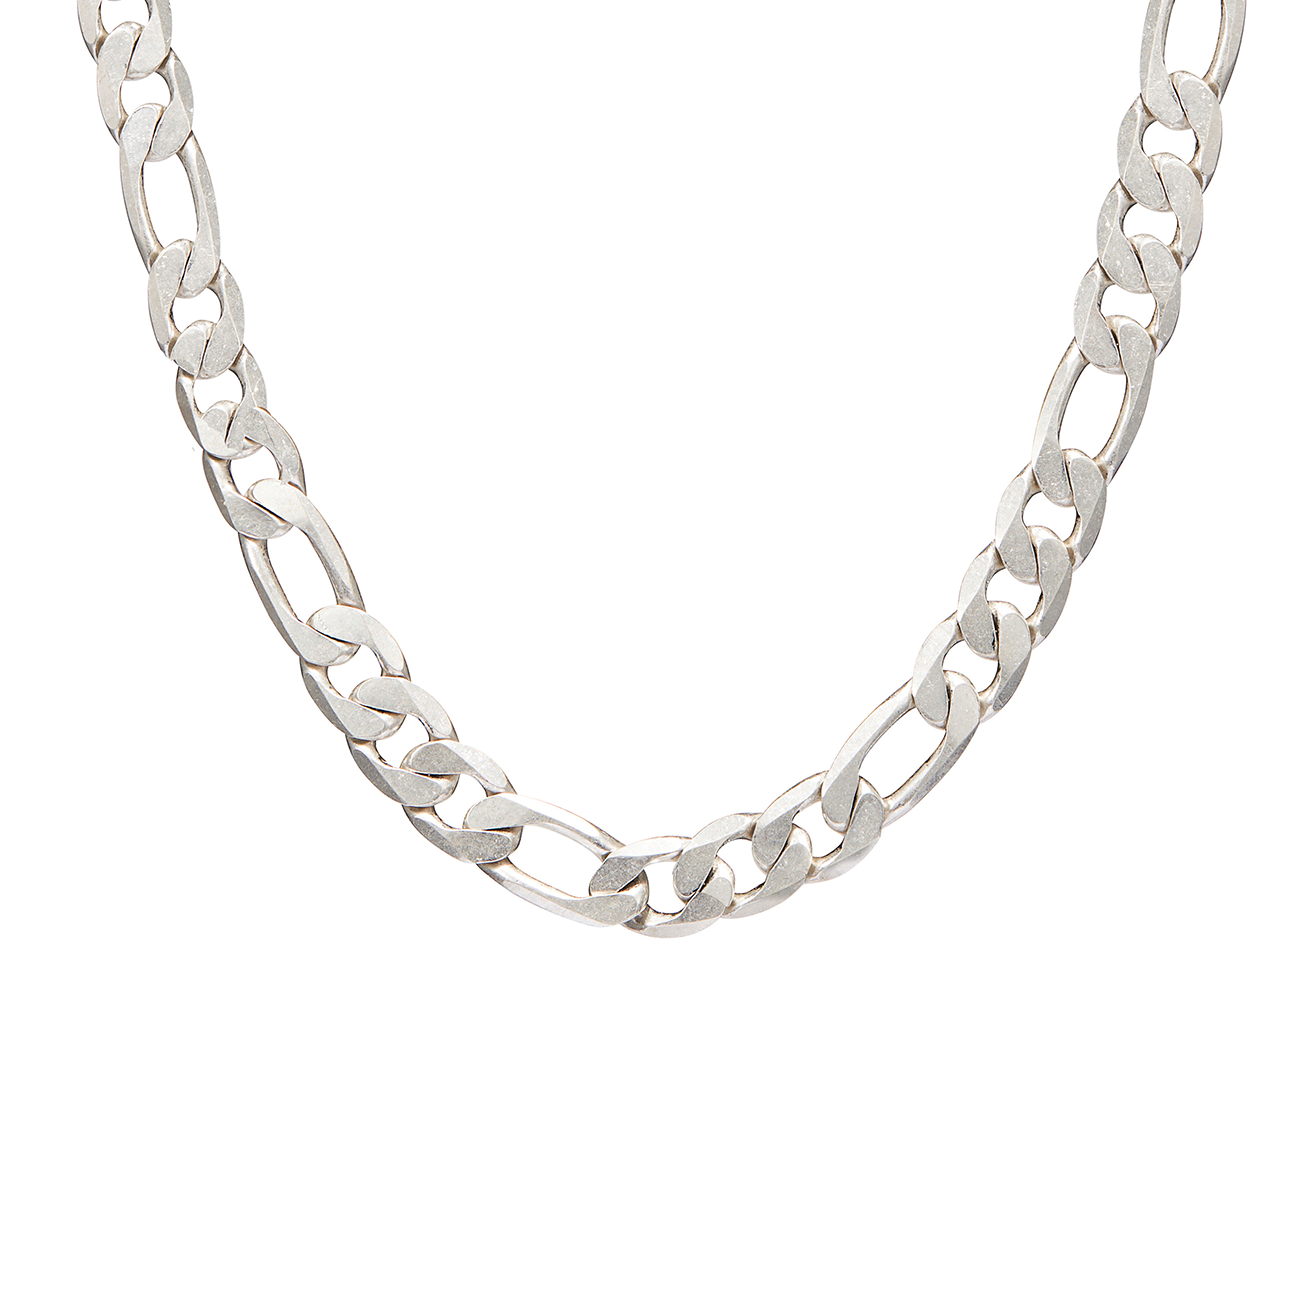 Figaro chain link The Landry necklace in Silver by JENNY BIRD